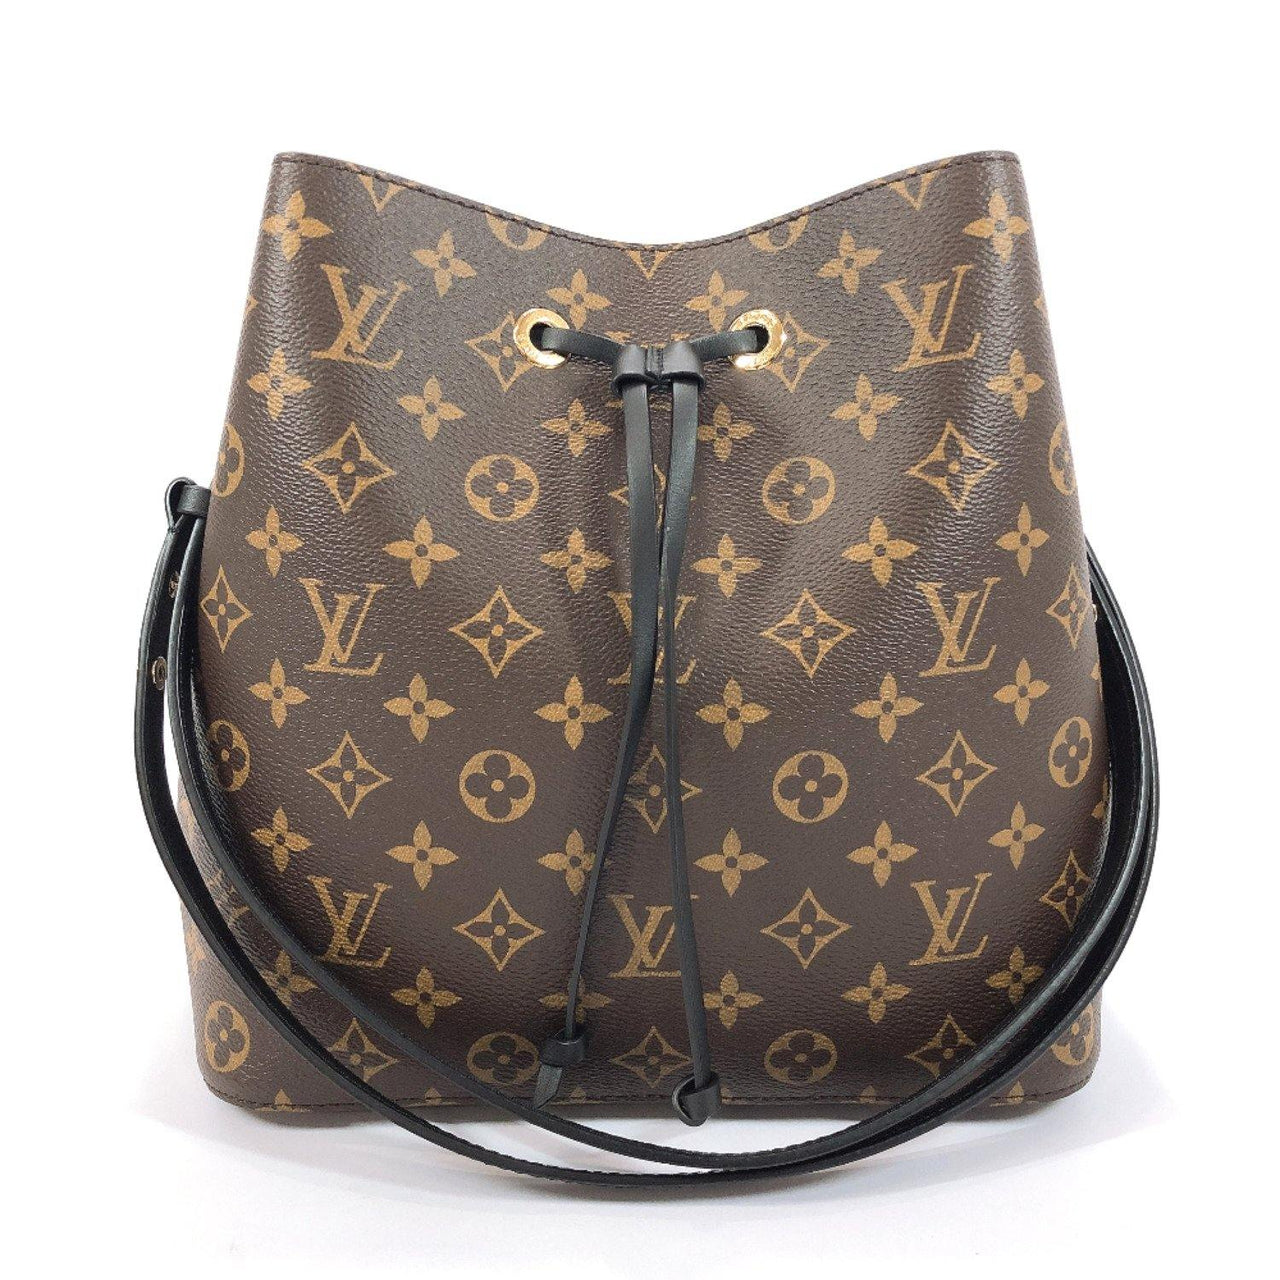 LOUIS VUITTON Shoulder Bag M44020 Neo Noe Monogram canvas Brown Women Used - JP-BRANDS.com